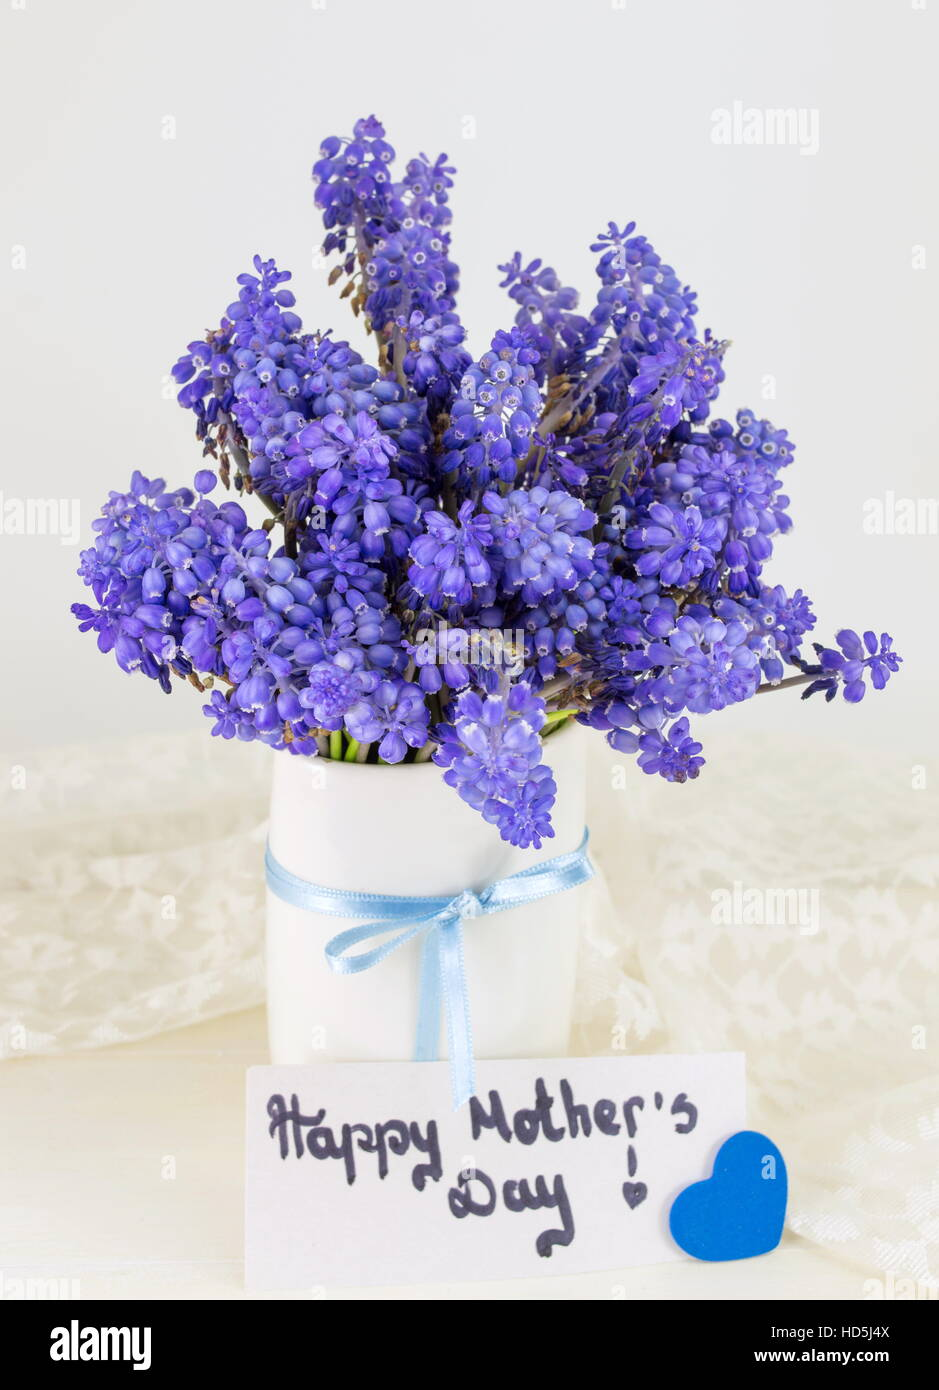 Bluebell Flowers Bouquet In A Vase And Happy Mothers Day Note Stock